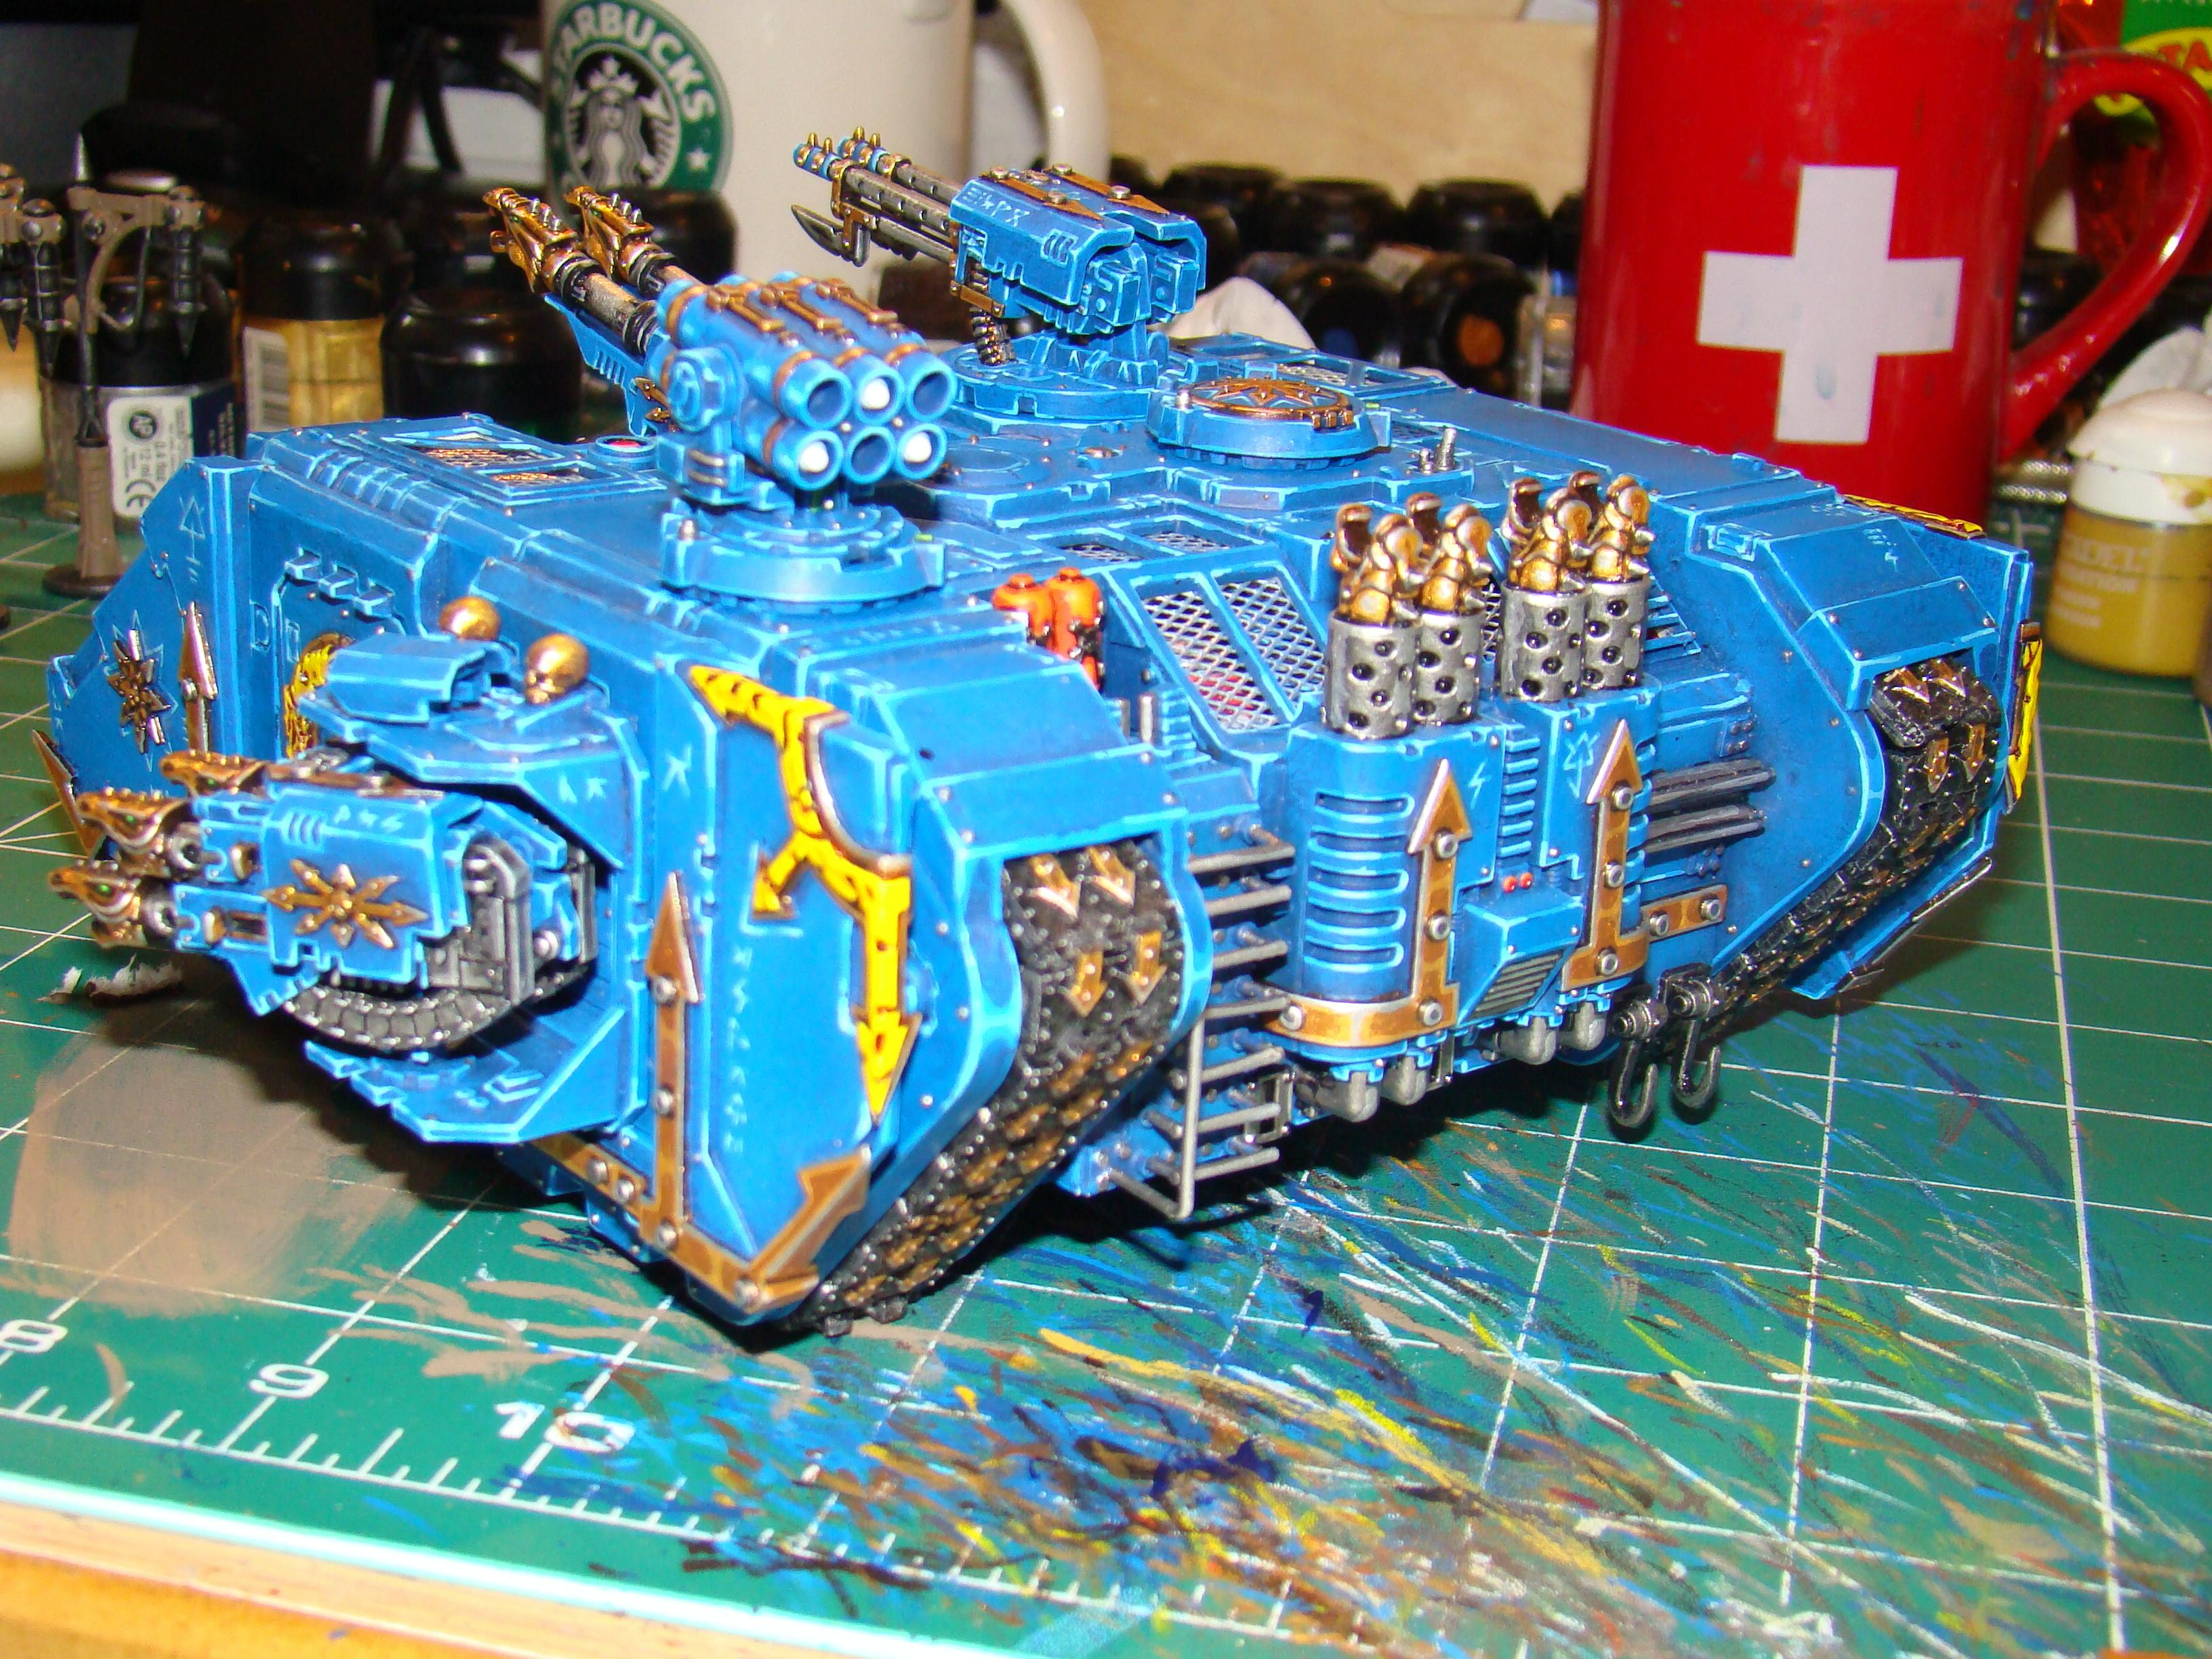 Chaos, Chaos Space Marines, Land Raider, Tank, Thousand Sons, Vehicle, Warhammer 40,000